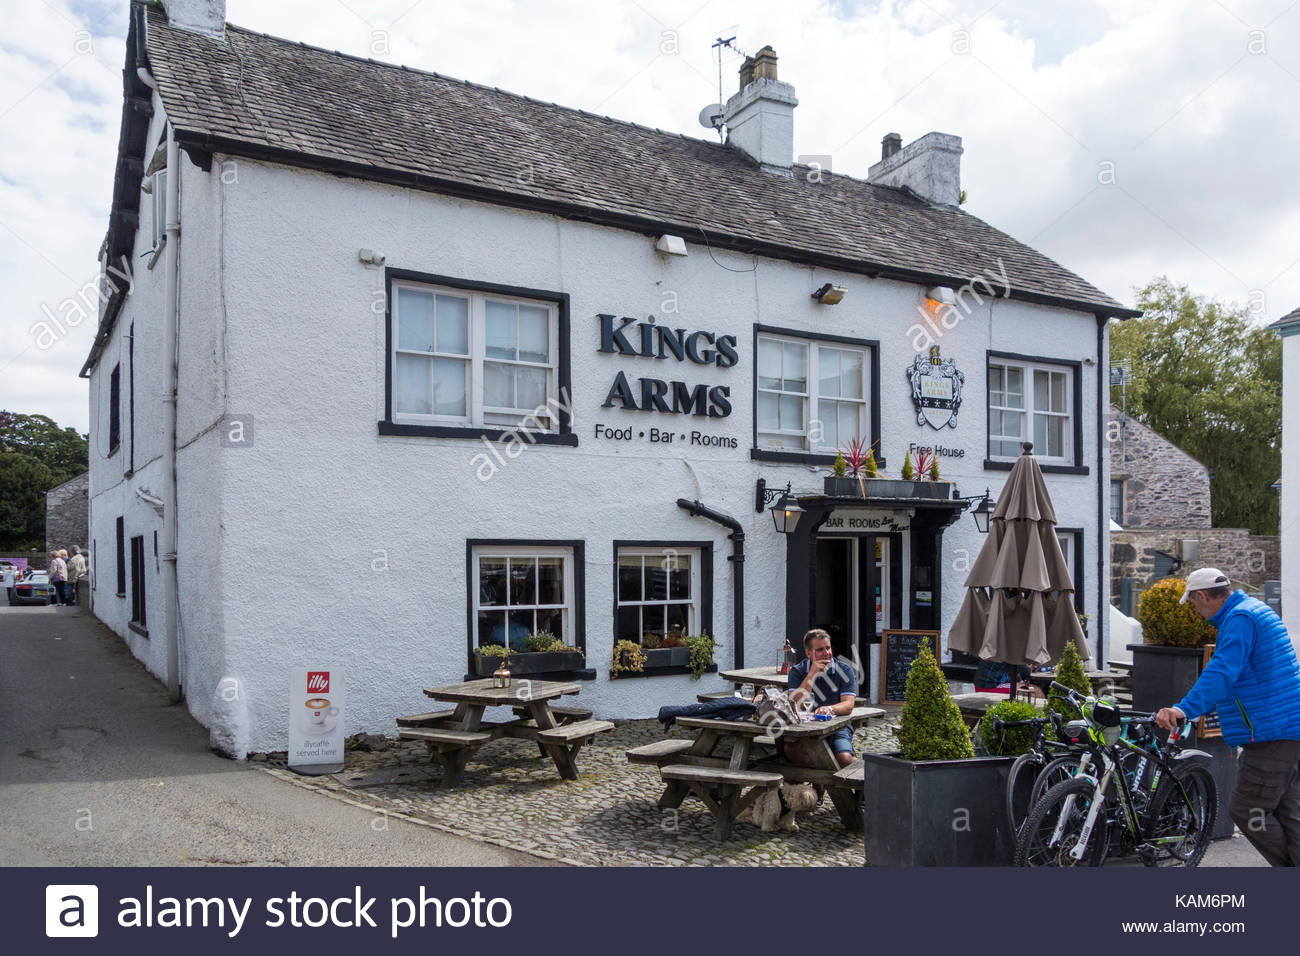 The Kings Arms Hotel in Cartmel village in Cumbria on the Bay Cycleway - Stock Image